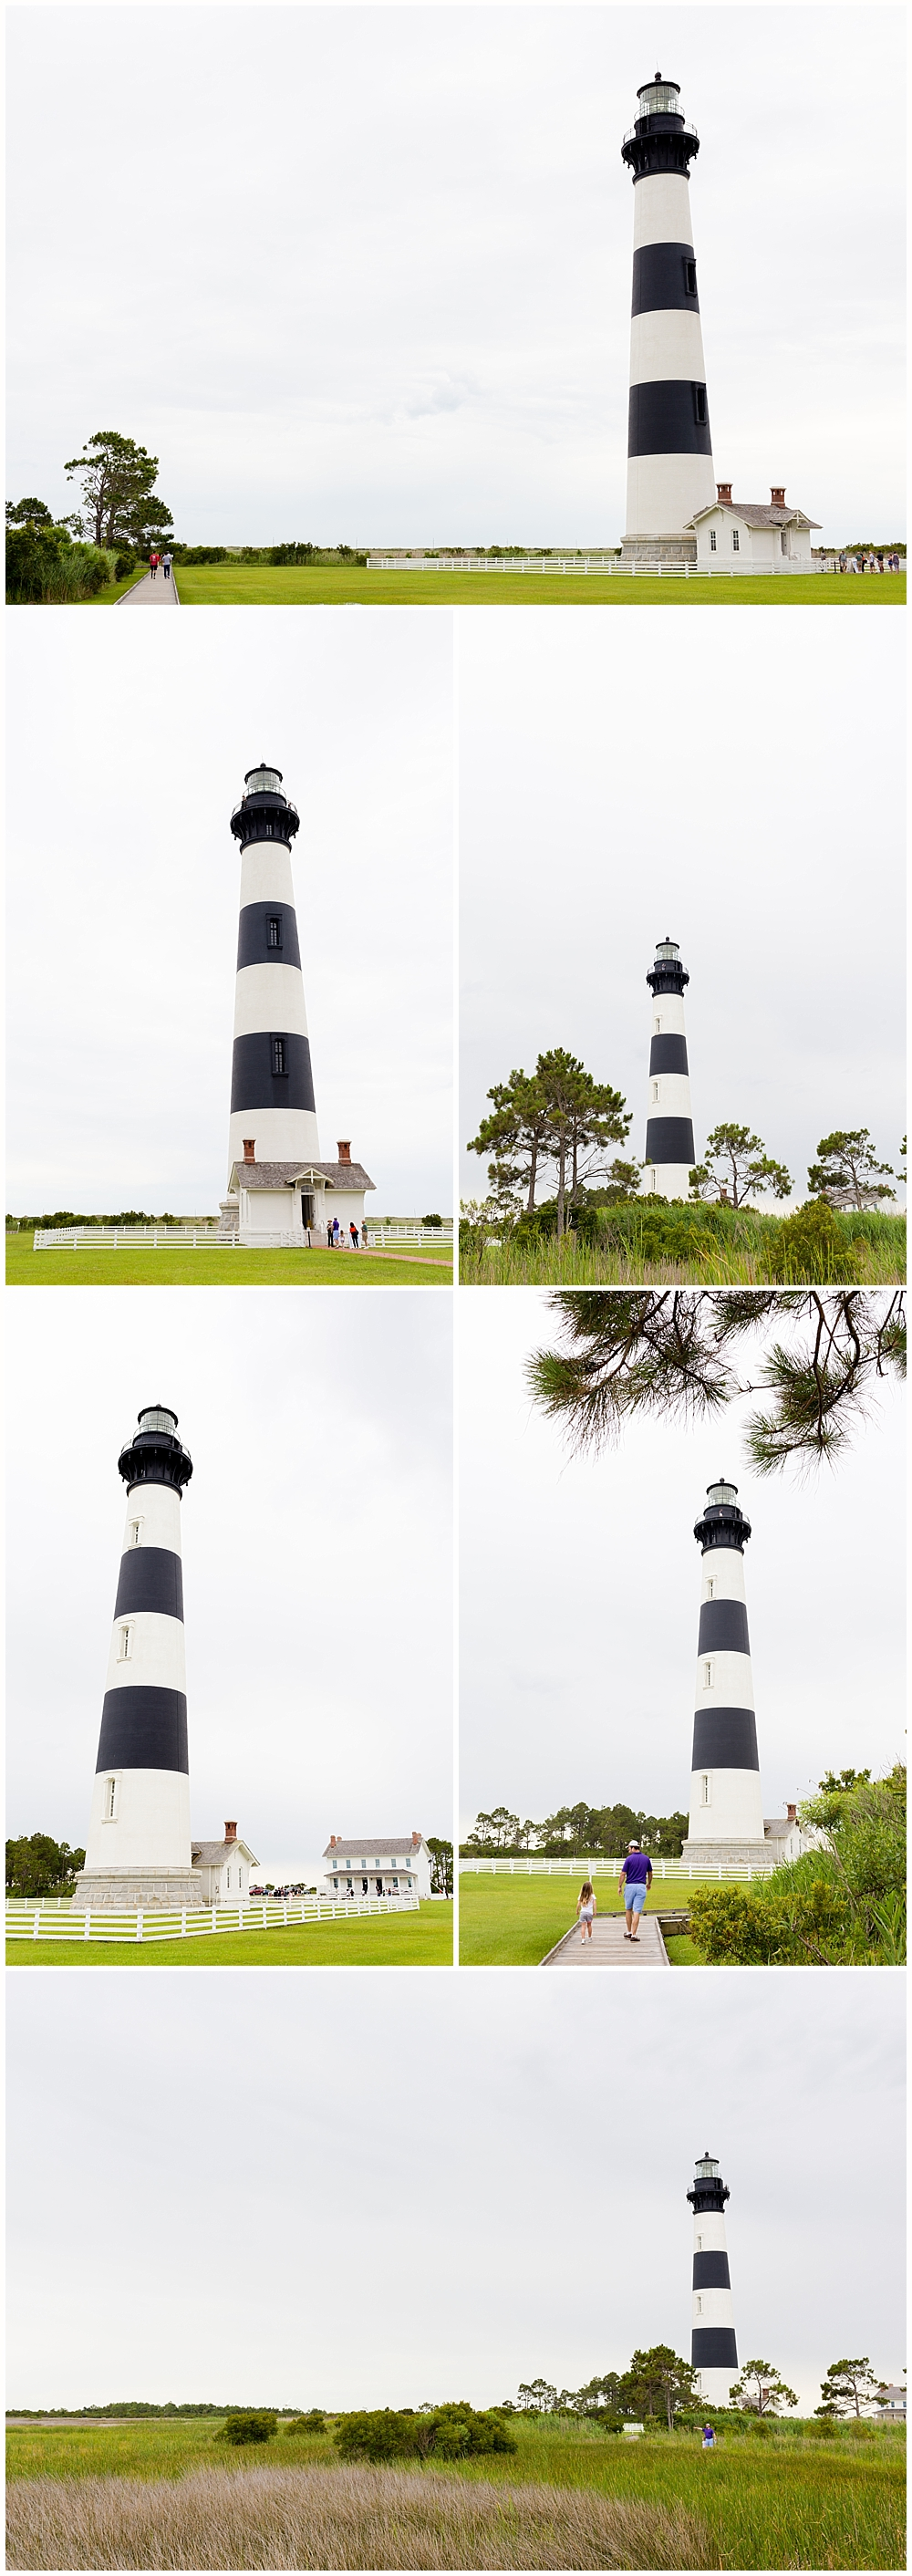 various angles of Bodie Island lighthouse - Outer Banks, NC